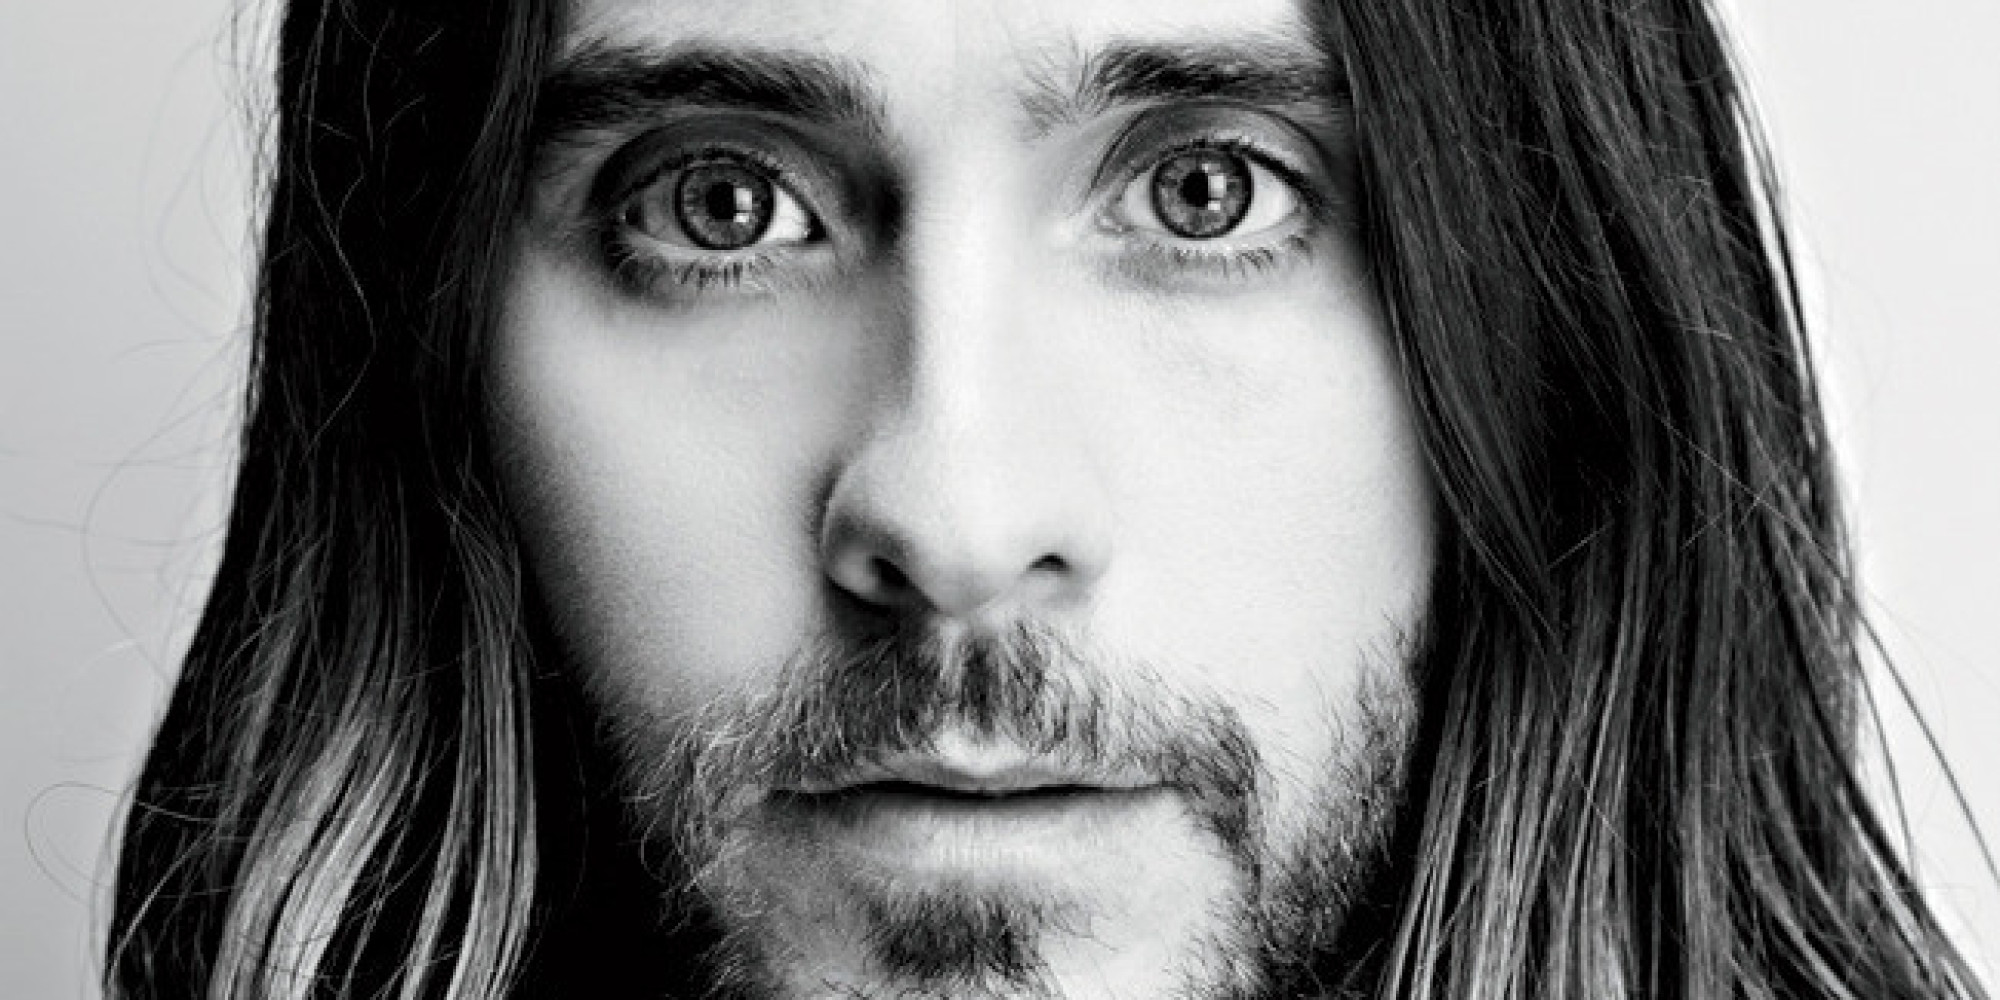 Jared leto images jared leto hd wallpaper and background photos - Jared Leto Images Jared Leto Hd Wallpaper And Background Photos 58